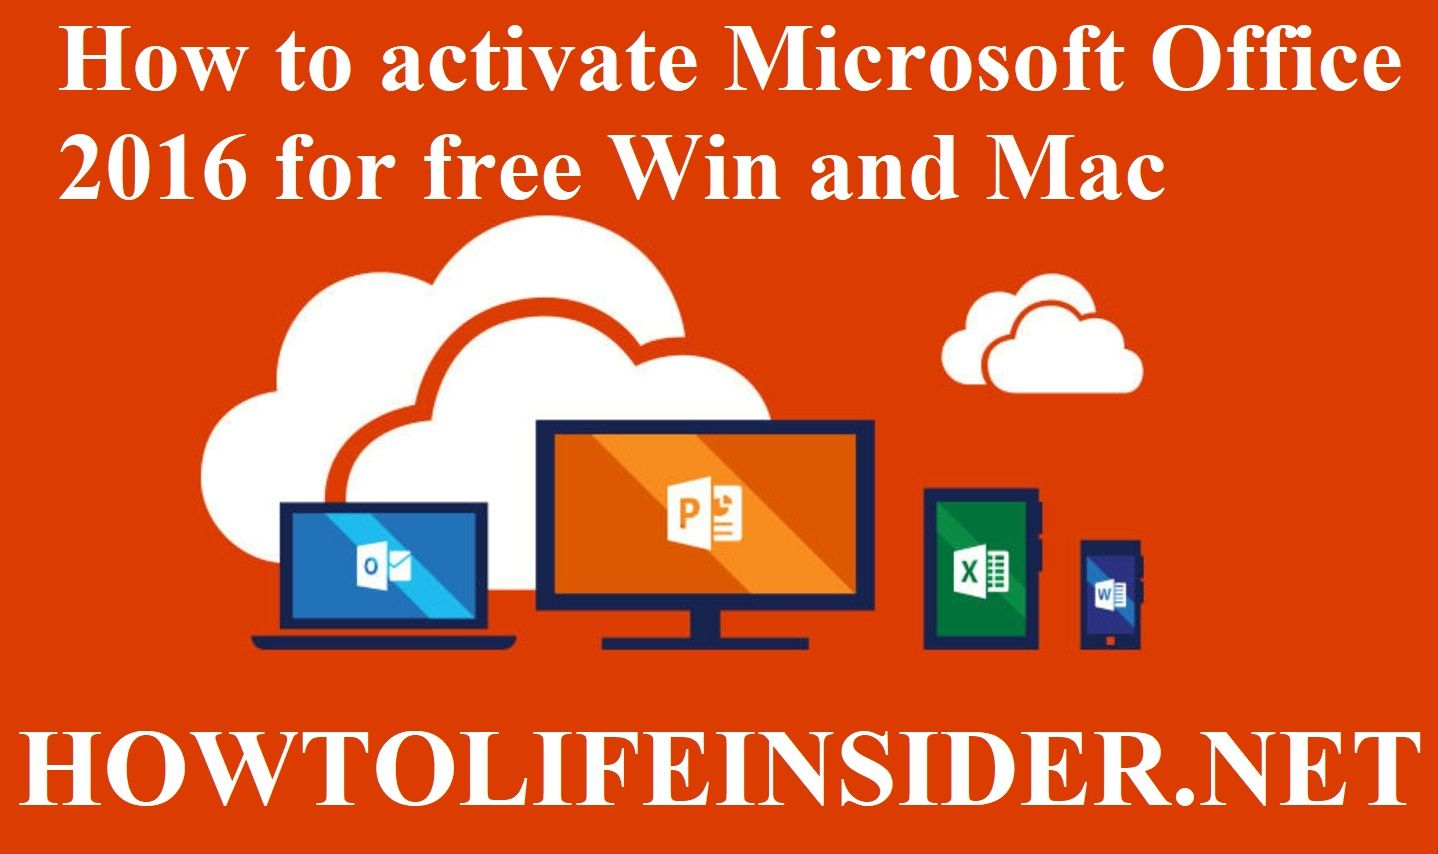 dbabcbb7ebd2e2f01db9457bc4ccf3a7 - How To Get Microsoft Office 2016 For Free Windows 10